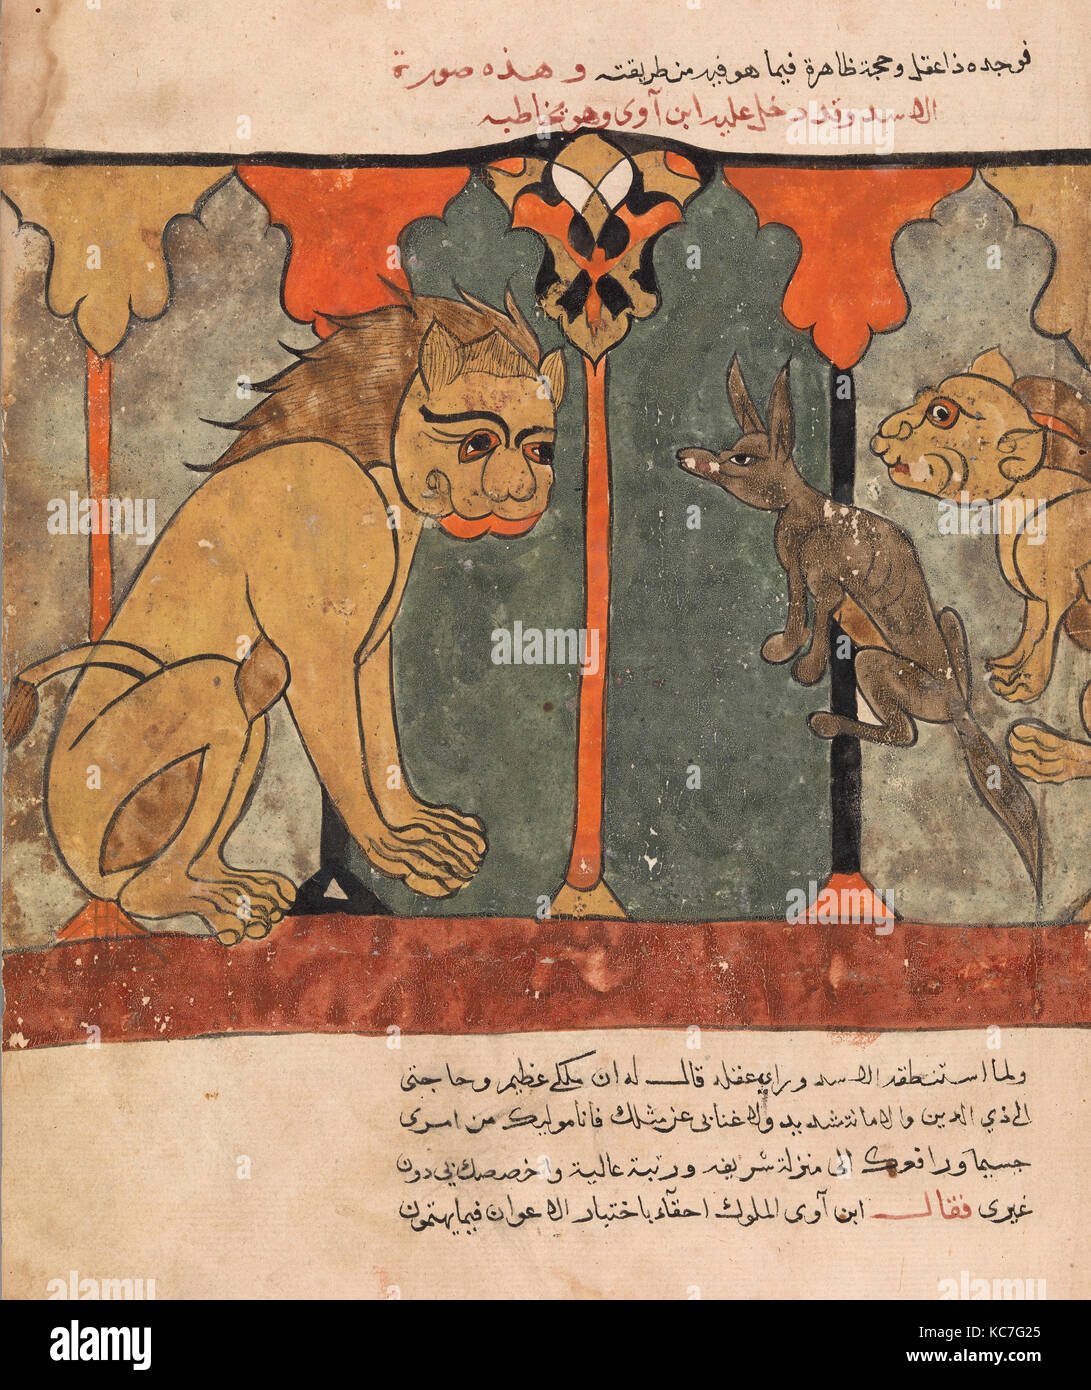 'The Lion-King Recruits the Ascetic Jackal', Folio from a Kalila wa Dimna, 18th century - Stock Image